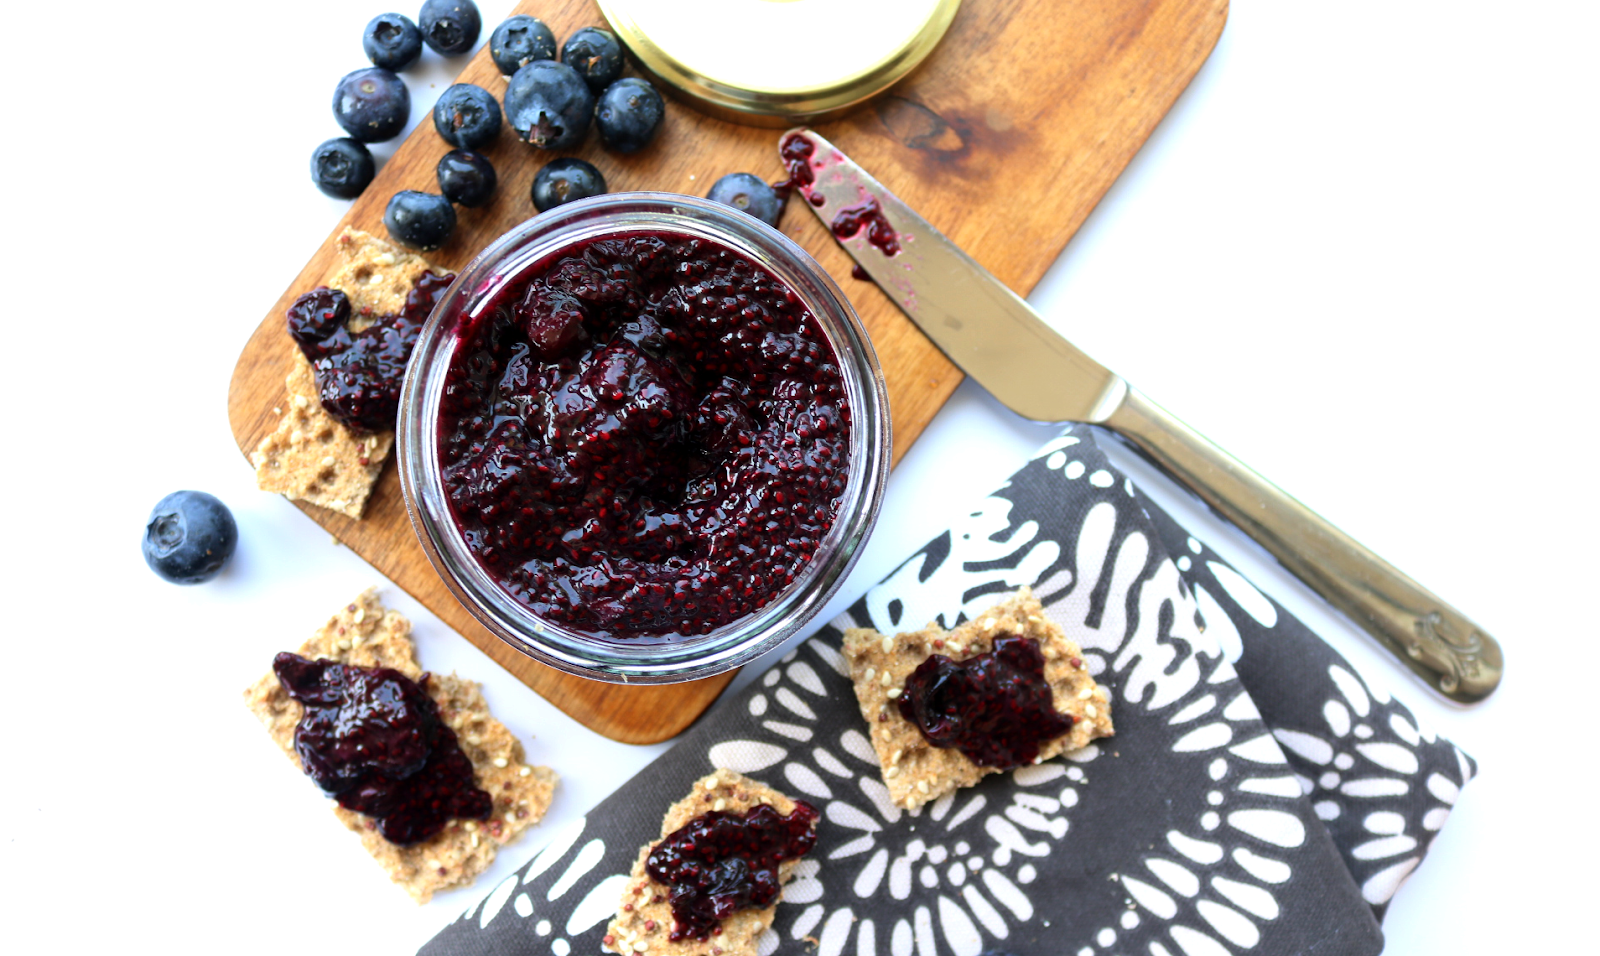 10 Minute Blueberry Chia Jam (Vegan / Refined Sugar Free recipe)